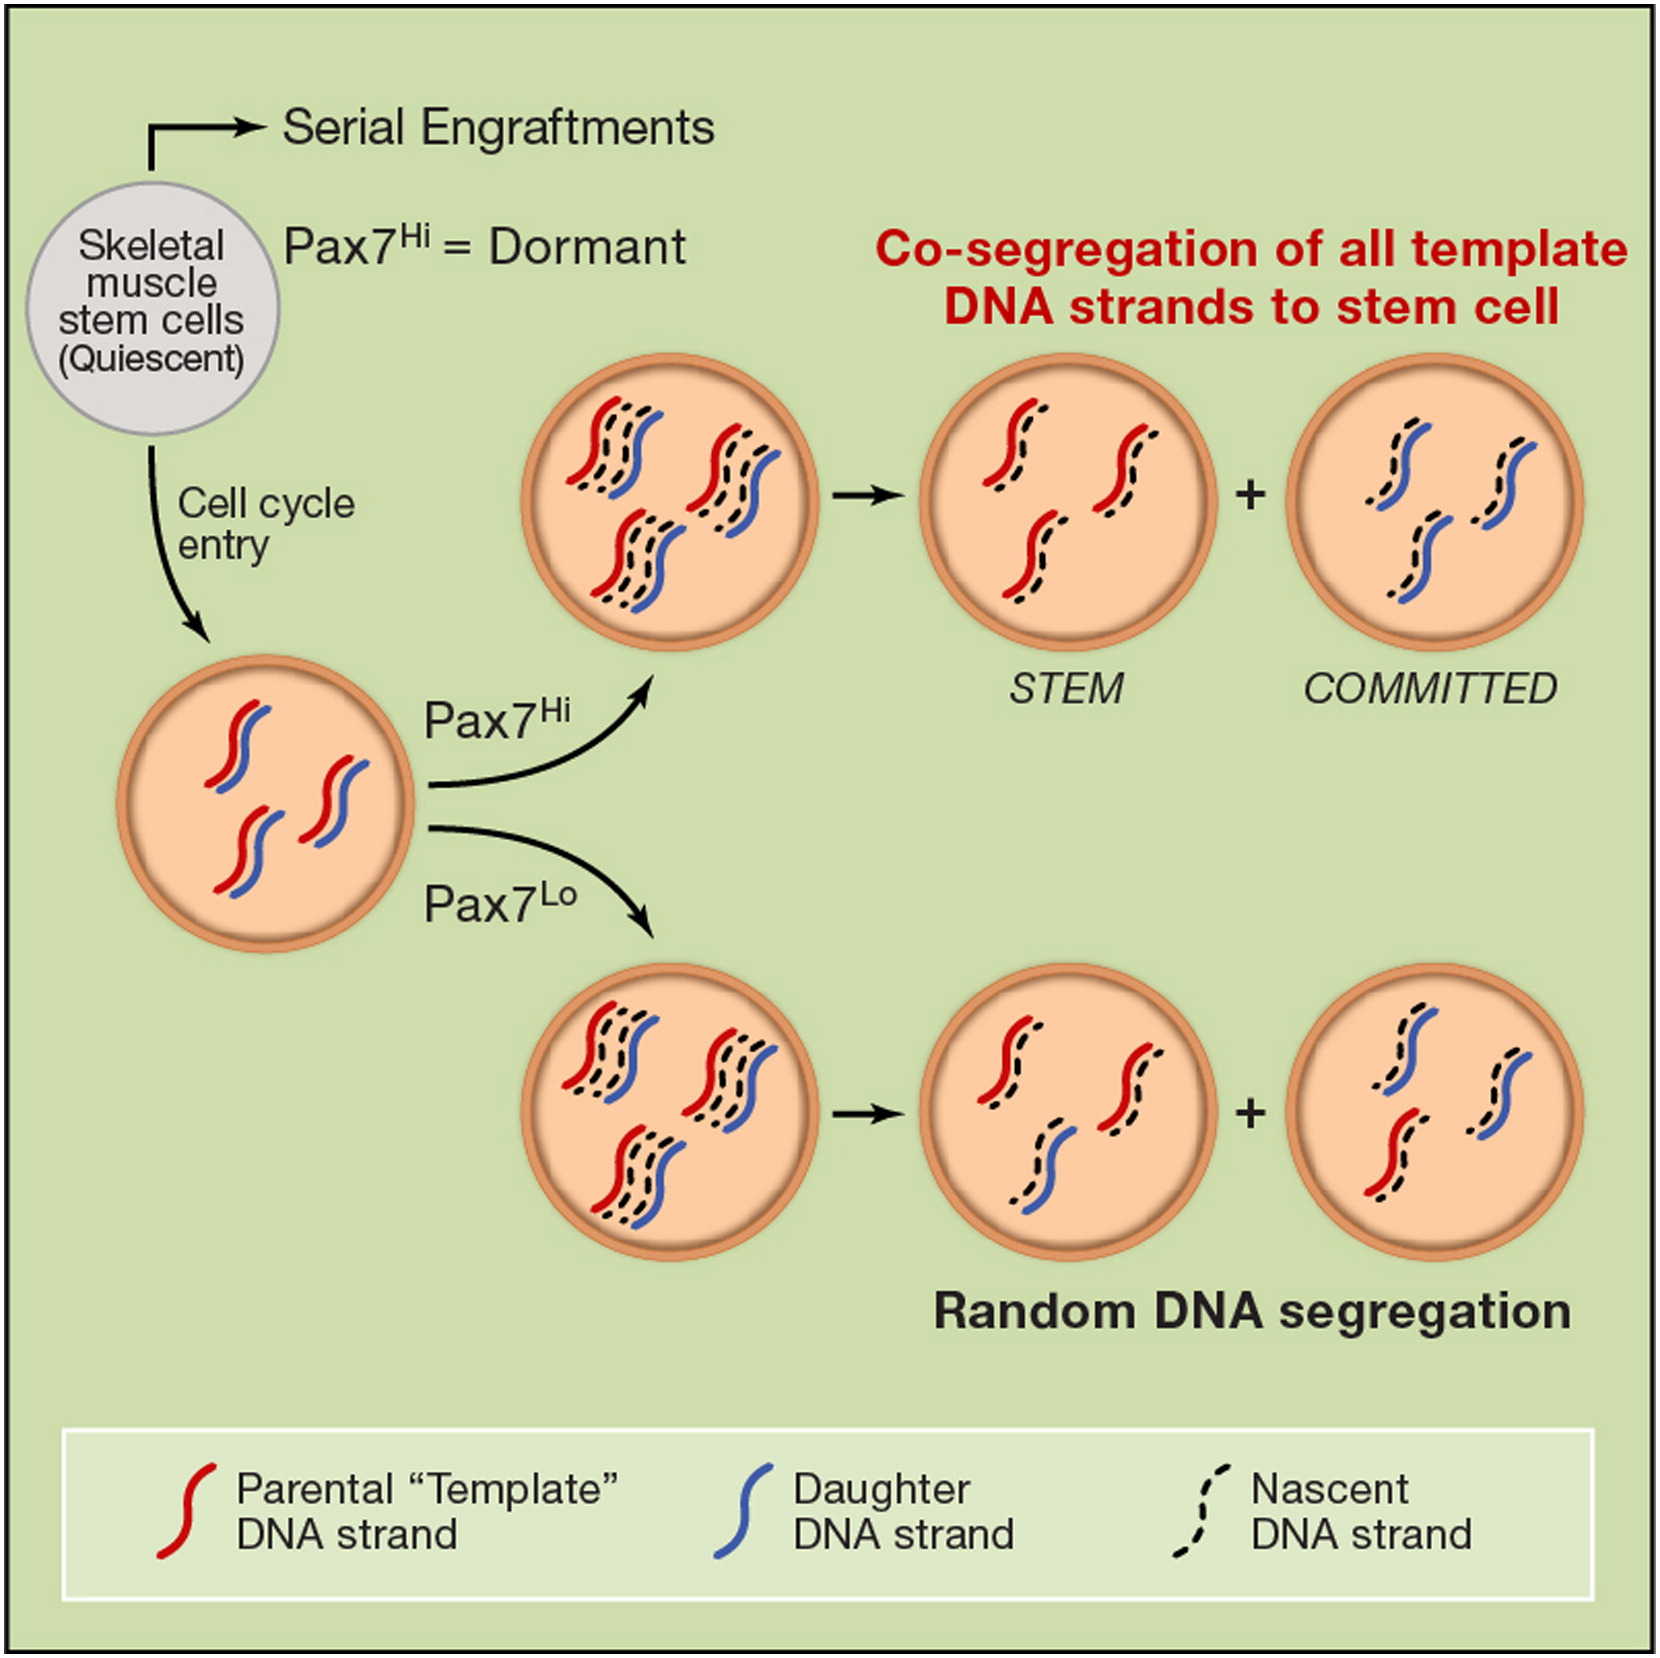 A Subpopulation Of Adult Skeletal Muscle Stem Cells Retains All Template Dna Strands After Cell